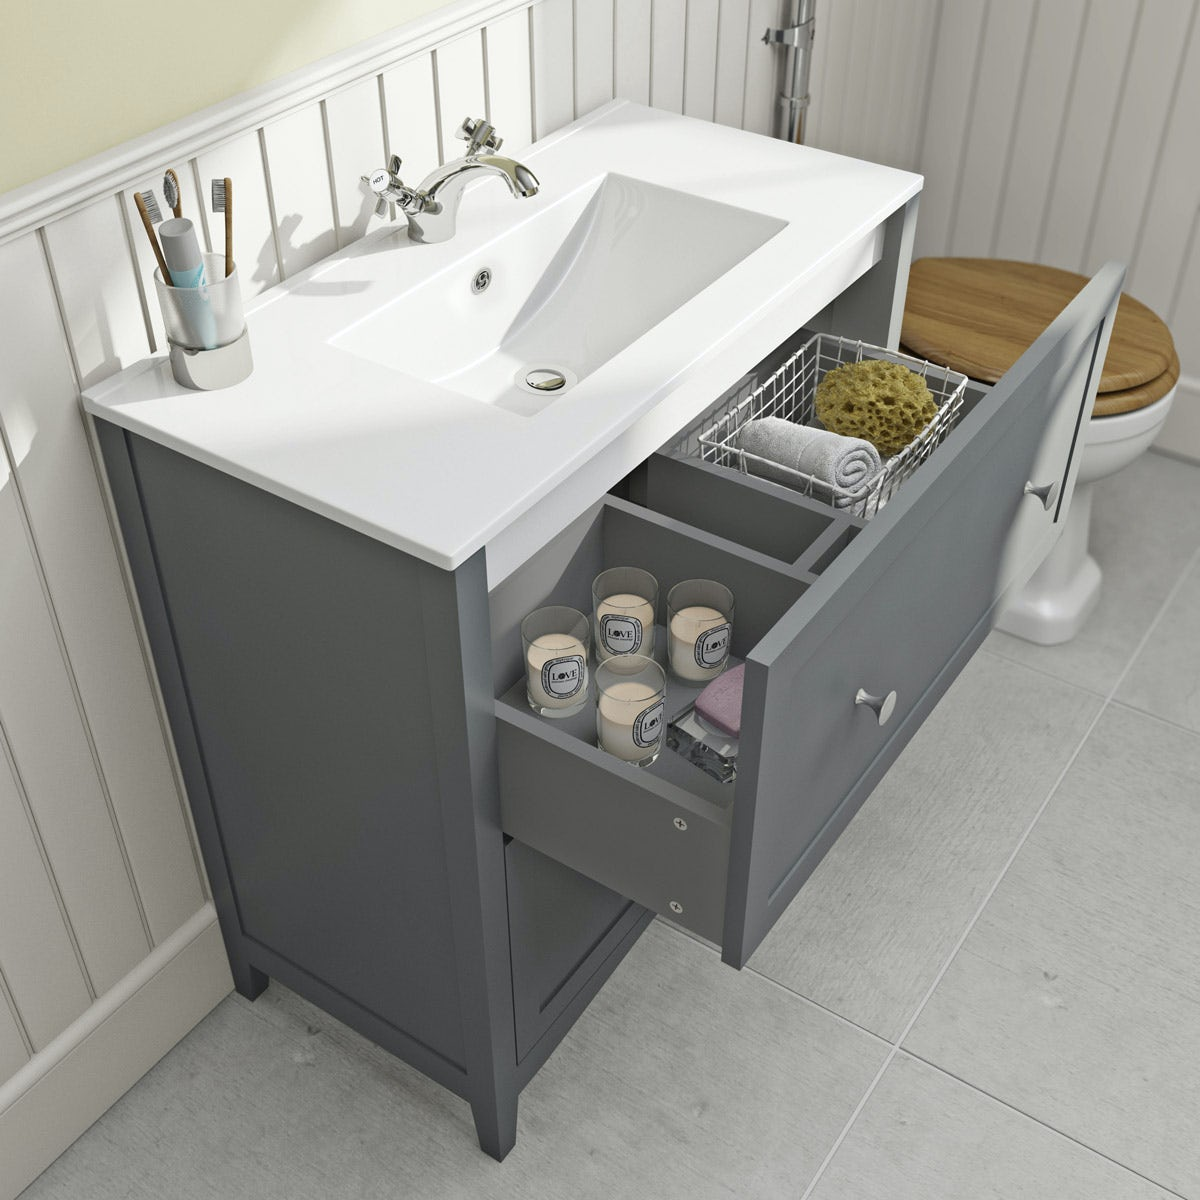 new style 25990 53a4d The Bath Co. Camberley satin grey floorstanding vanity unit and ceramic  basin 800mm